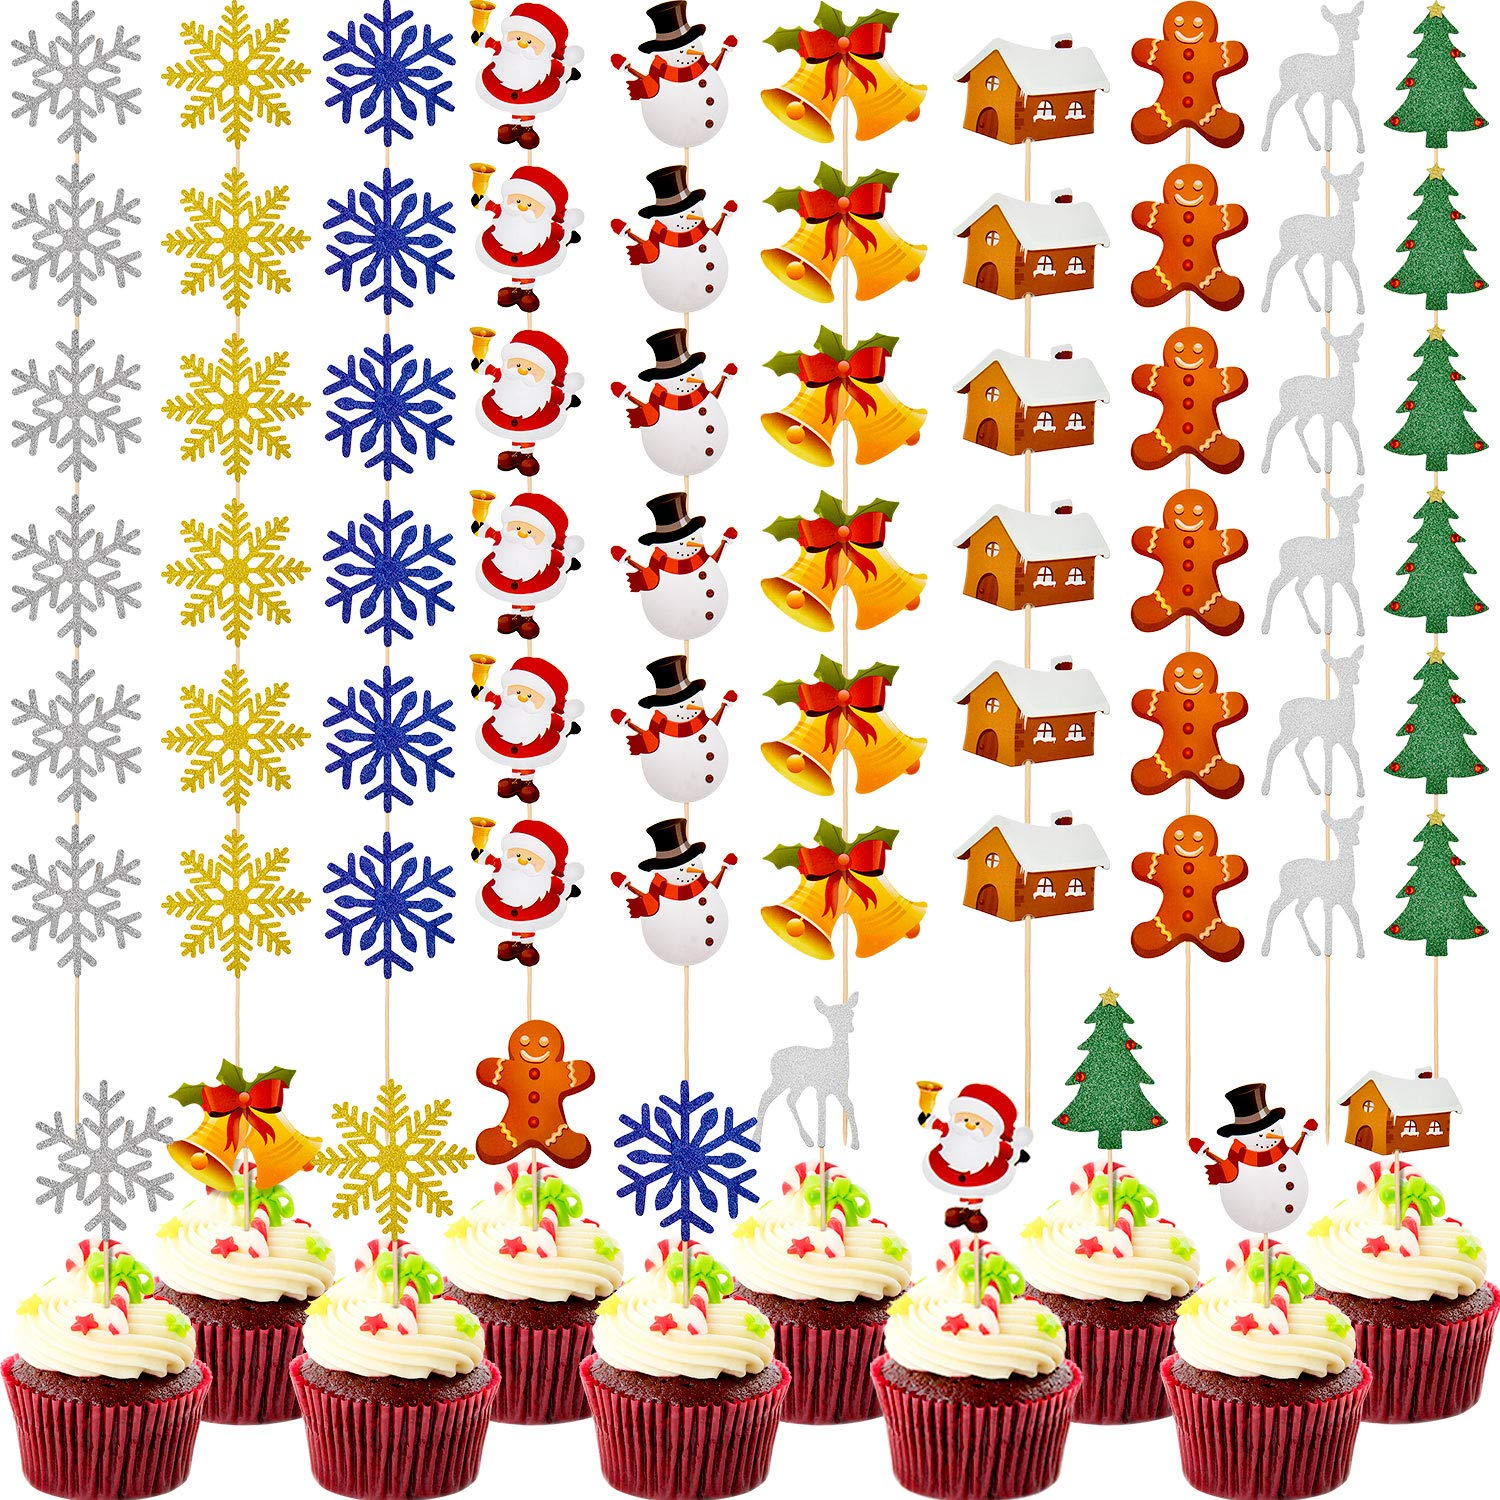 Boao 60 Pieces Christmas Cupcake Toppers Glitter Cake Picks Xmas Party Cupcake Cake Topper for Christmas Wedding Decoration Supplies, 10 Styles